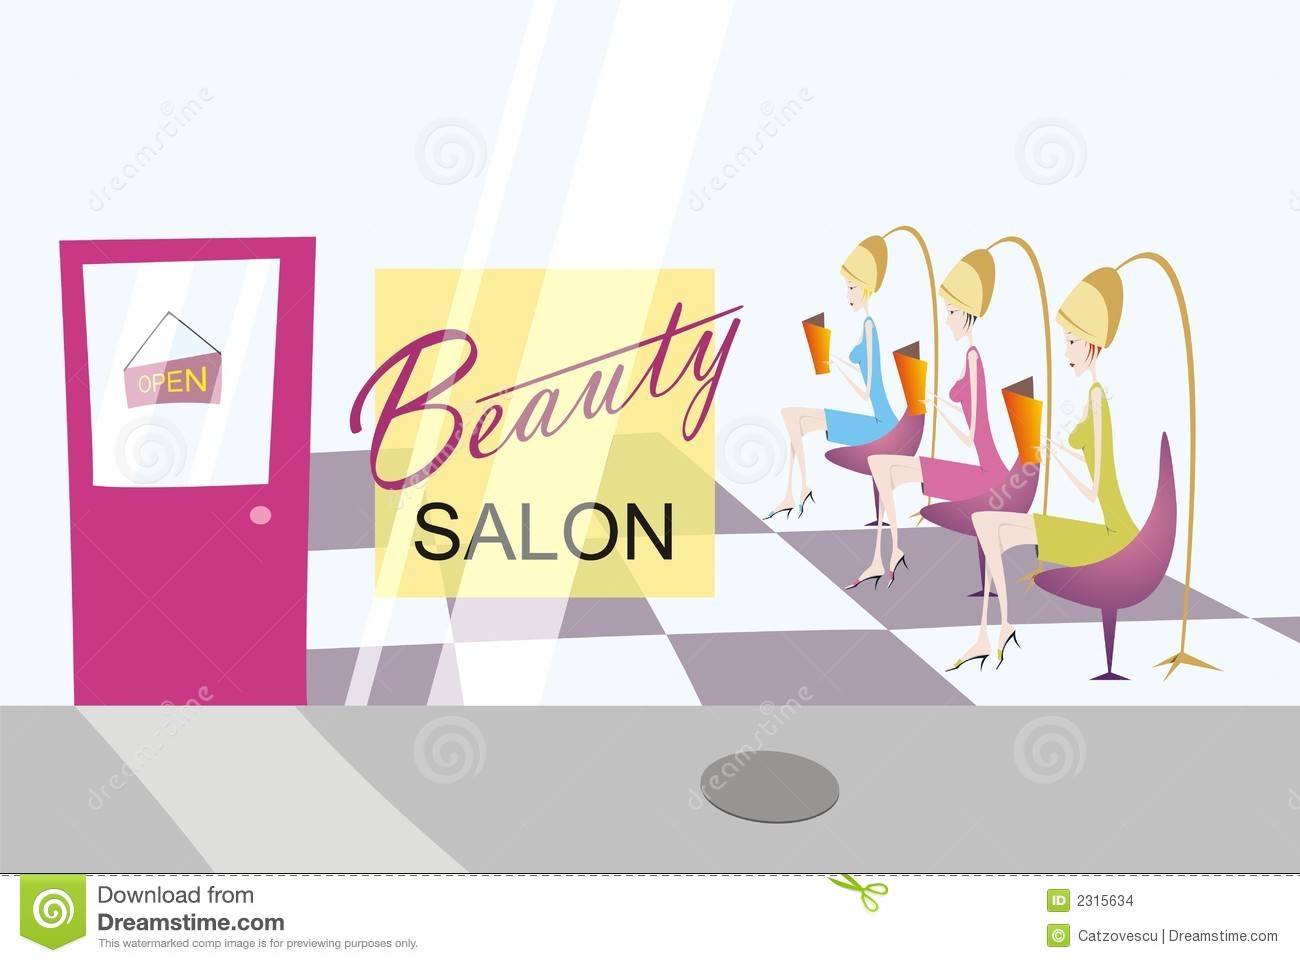 Beauty salon clipart images for Actual beauty salon